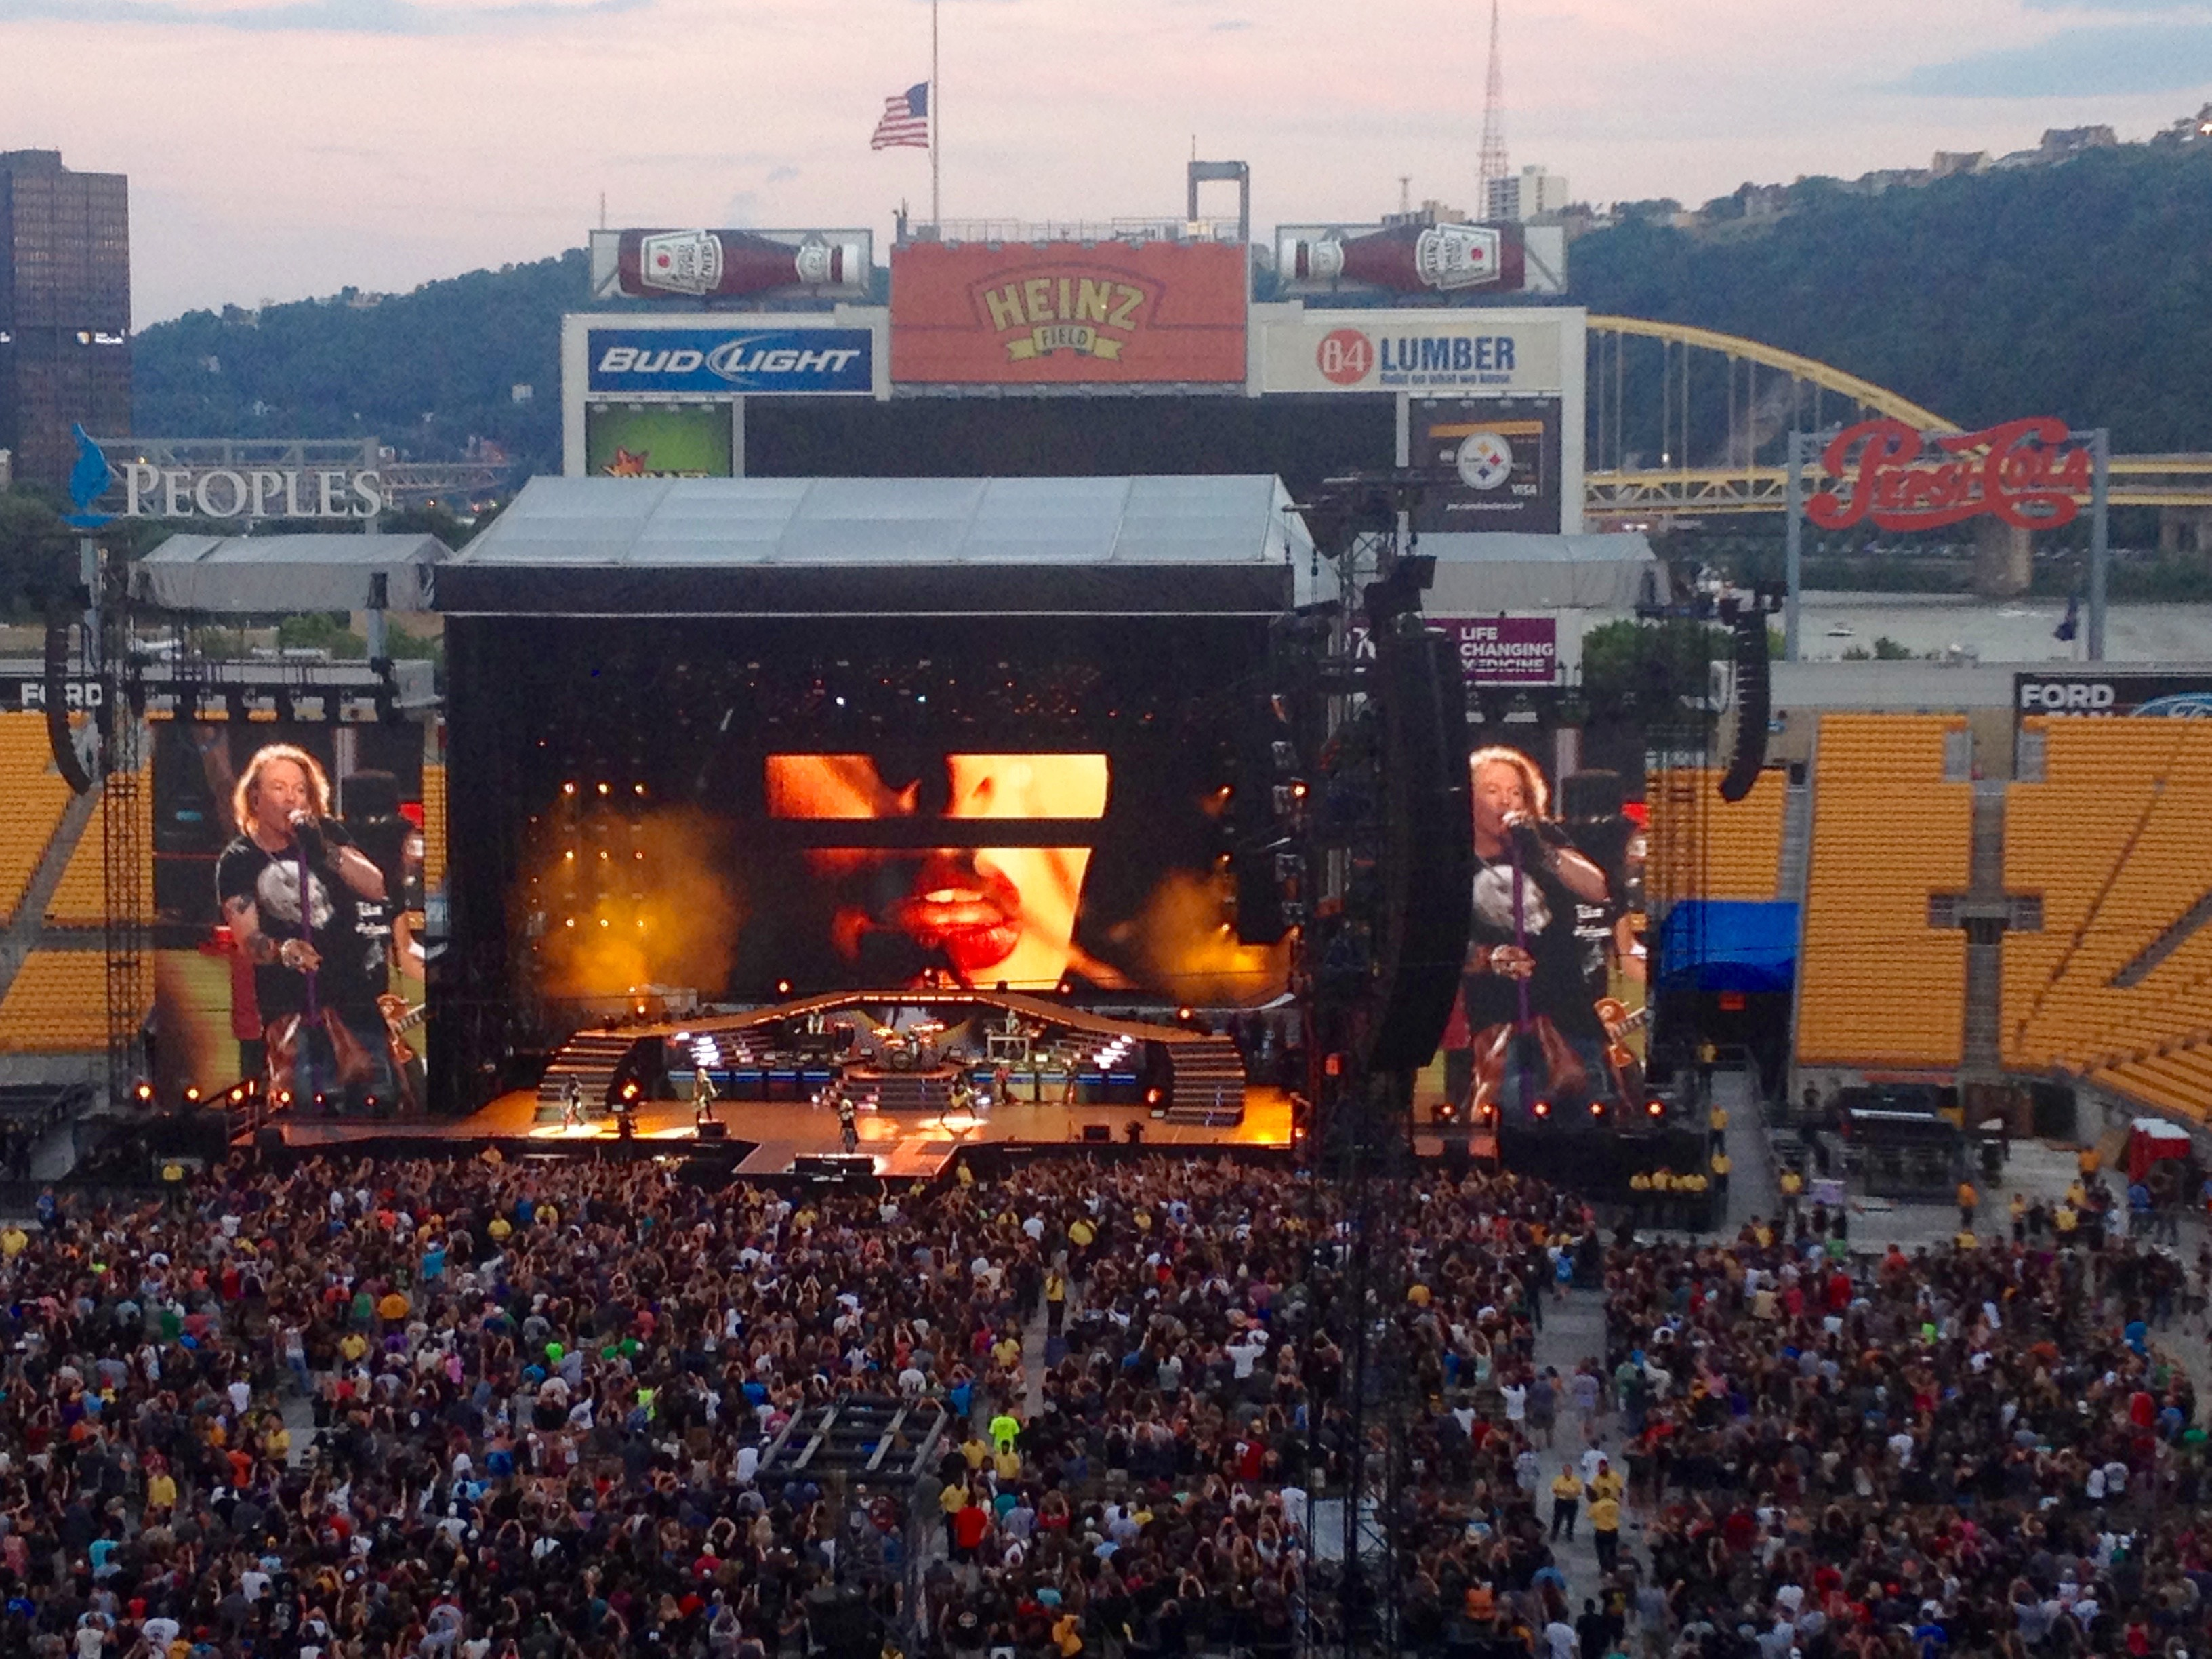 Guns n' Roses live @ Heinz Field in Pittsburgh, PA.